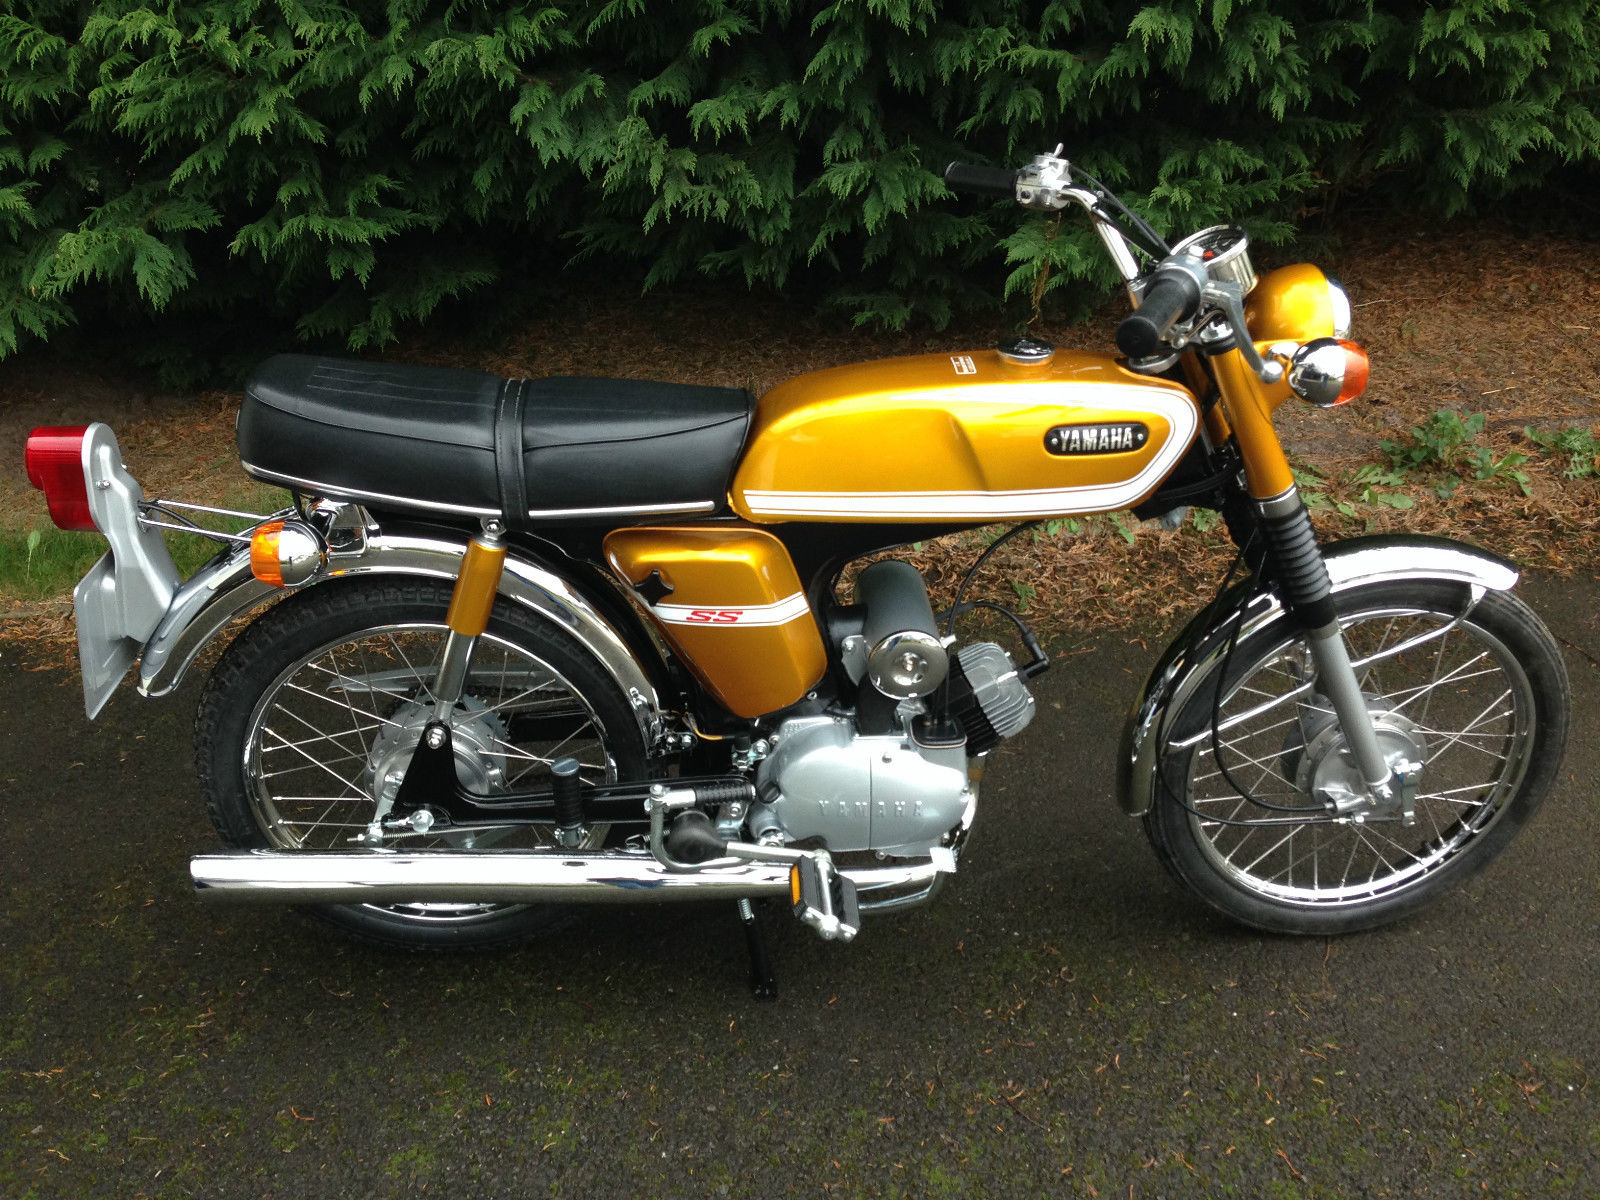 Yamaha SS50 - 1973 - Right Side View, Engine and Gearbox, Exhaust, Side Panel with SS Badge and Suspension.